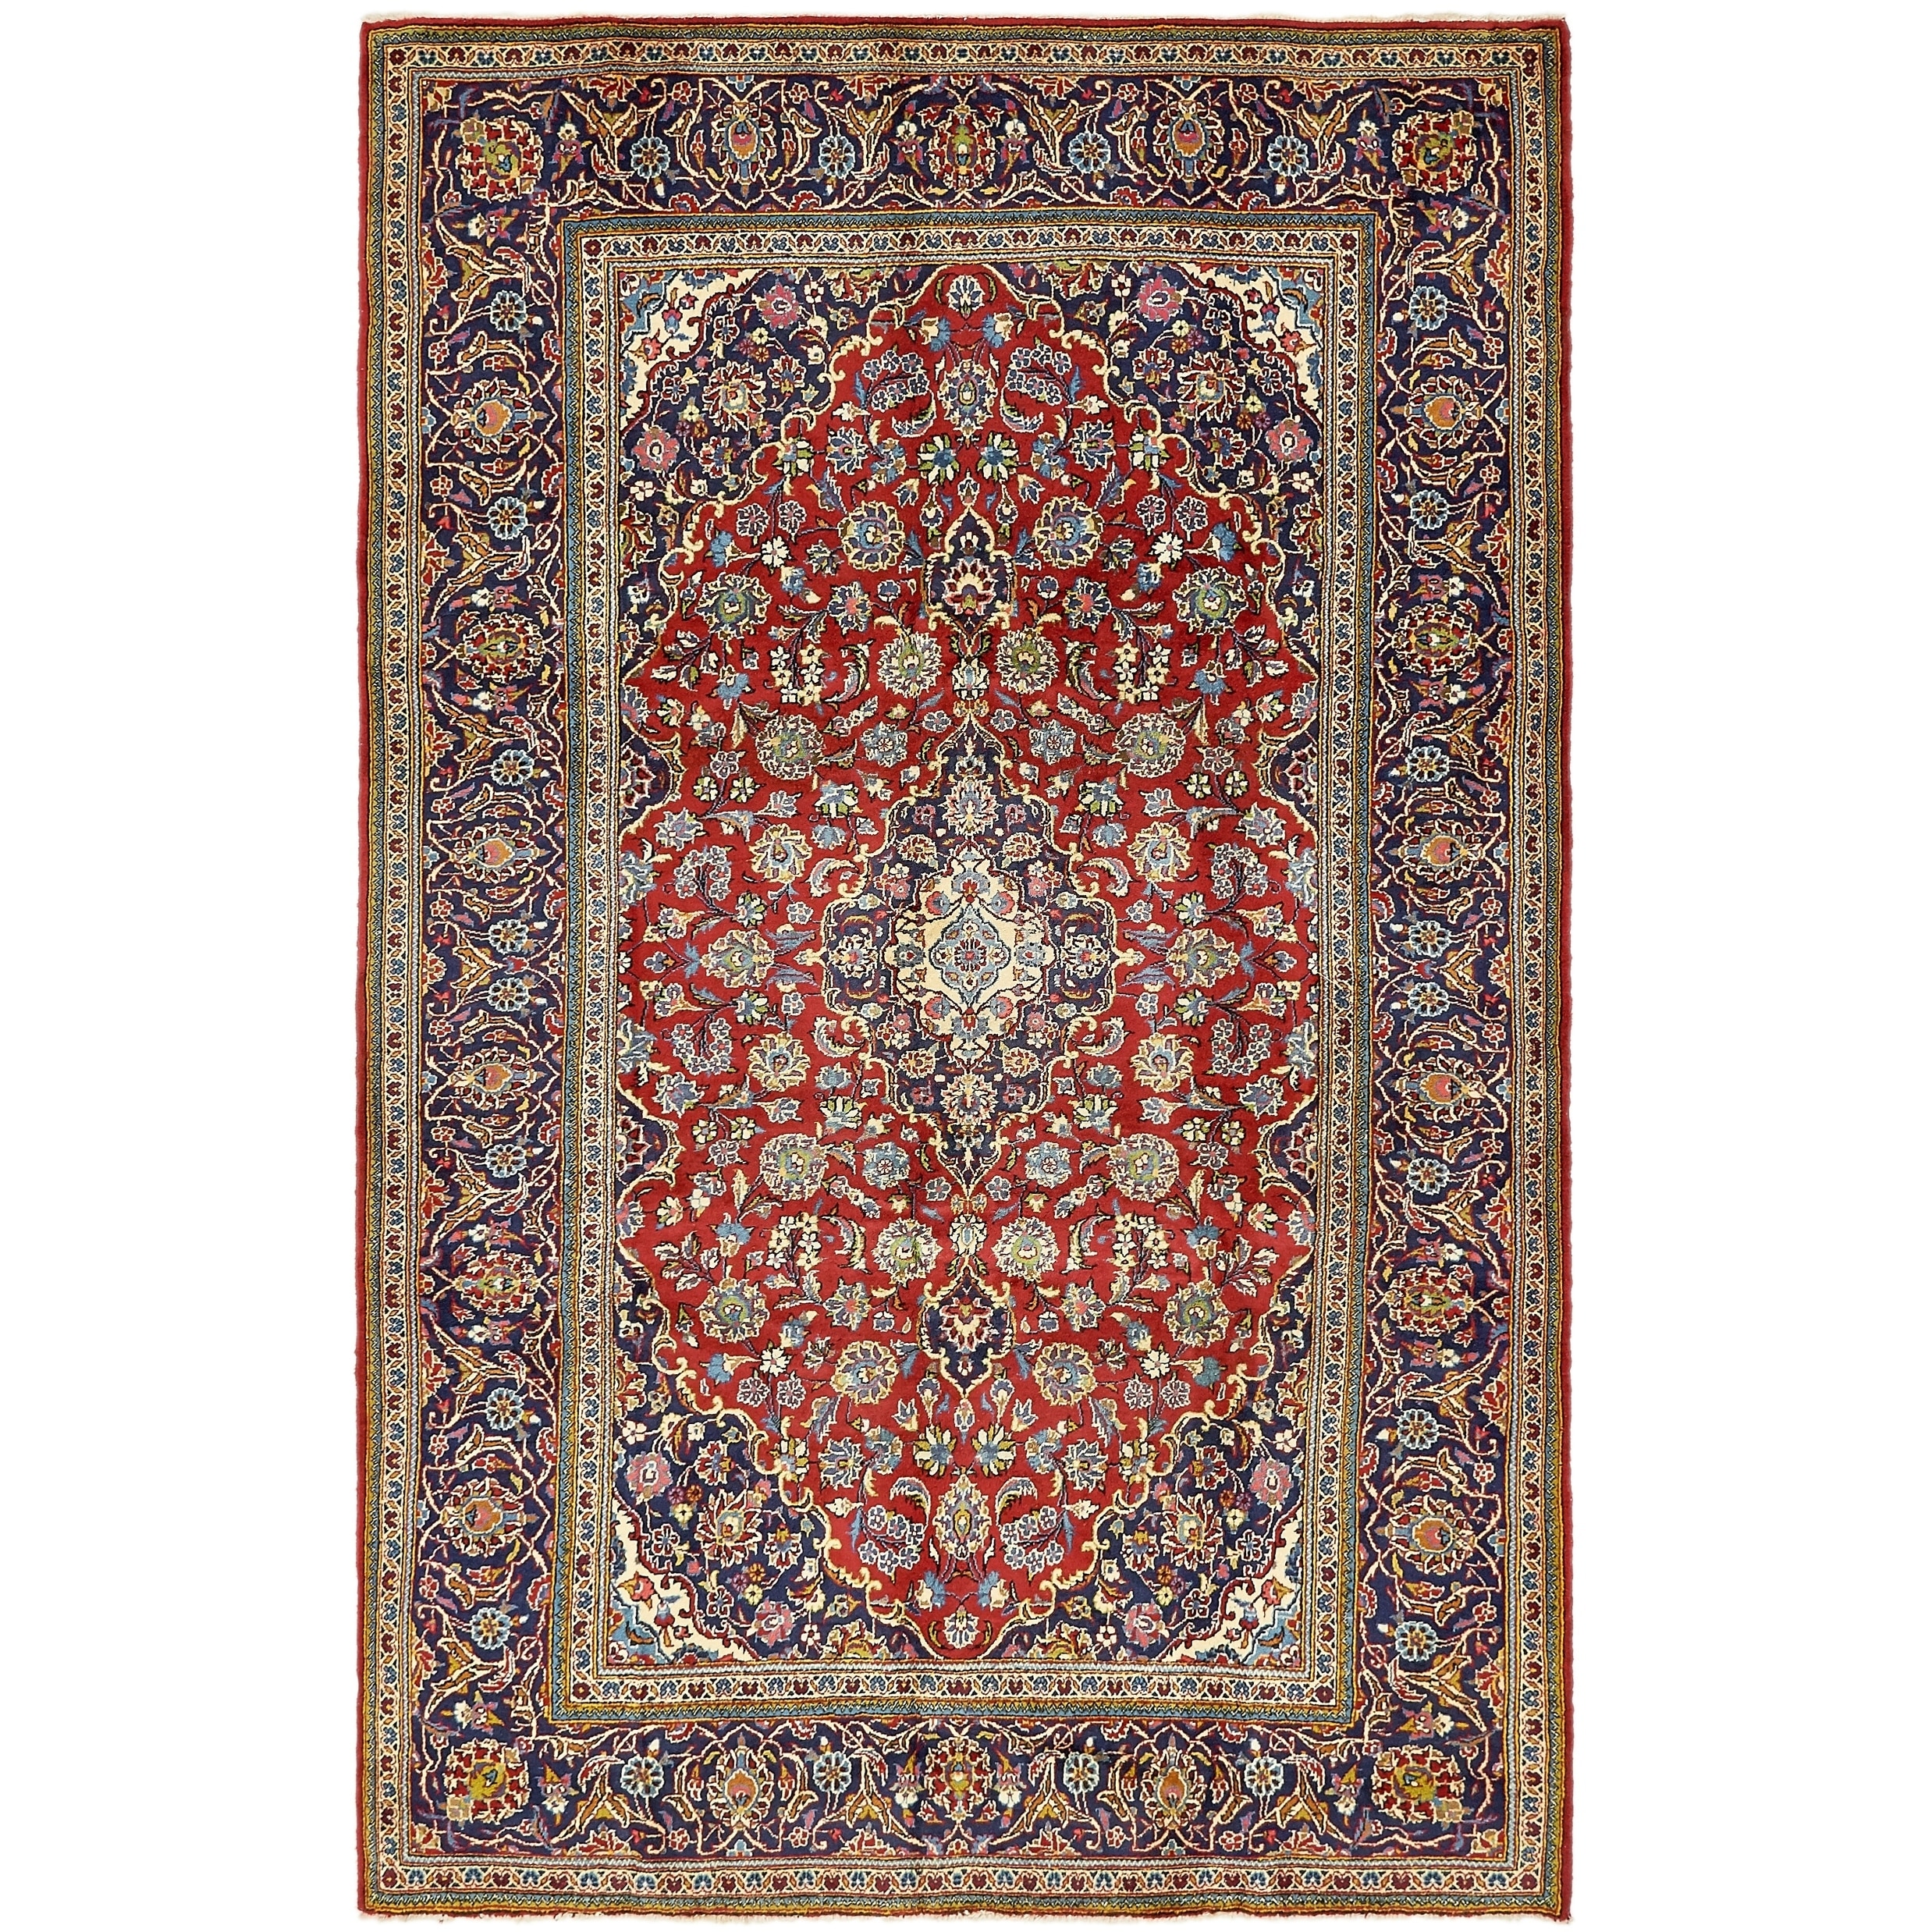 Hand Knotted Kashan Semi Antique Wool Area Rug - 6 6 x 10 4 (Red - 6 6 x 10 4)